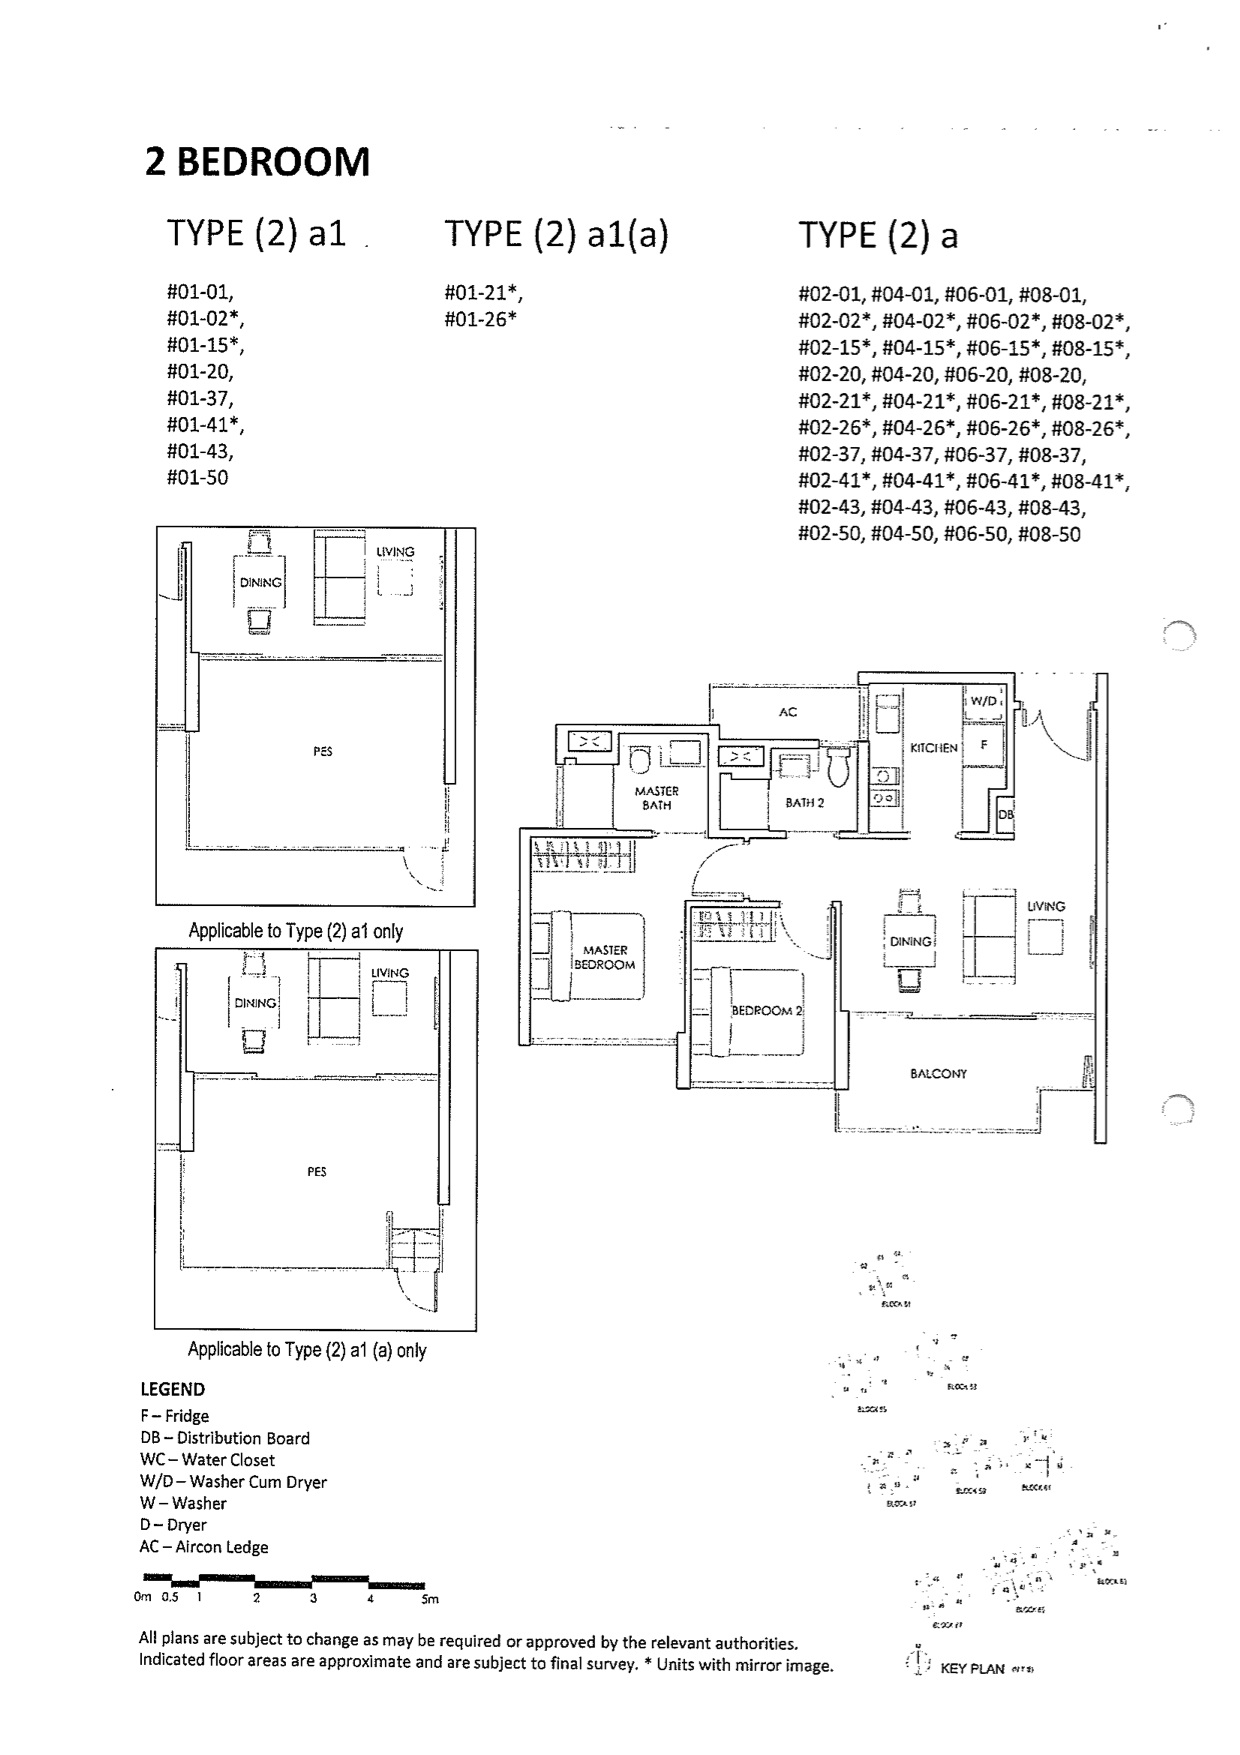 inflora floor plans the inflora condo floor plan